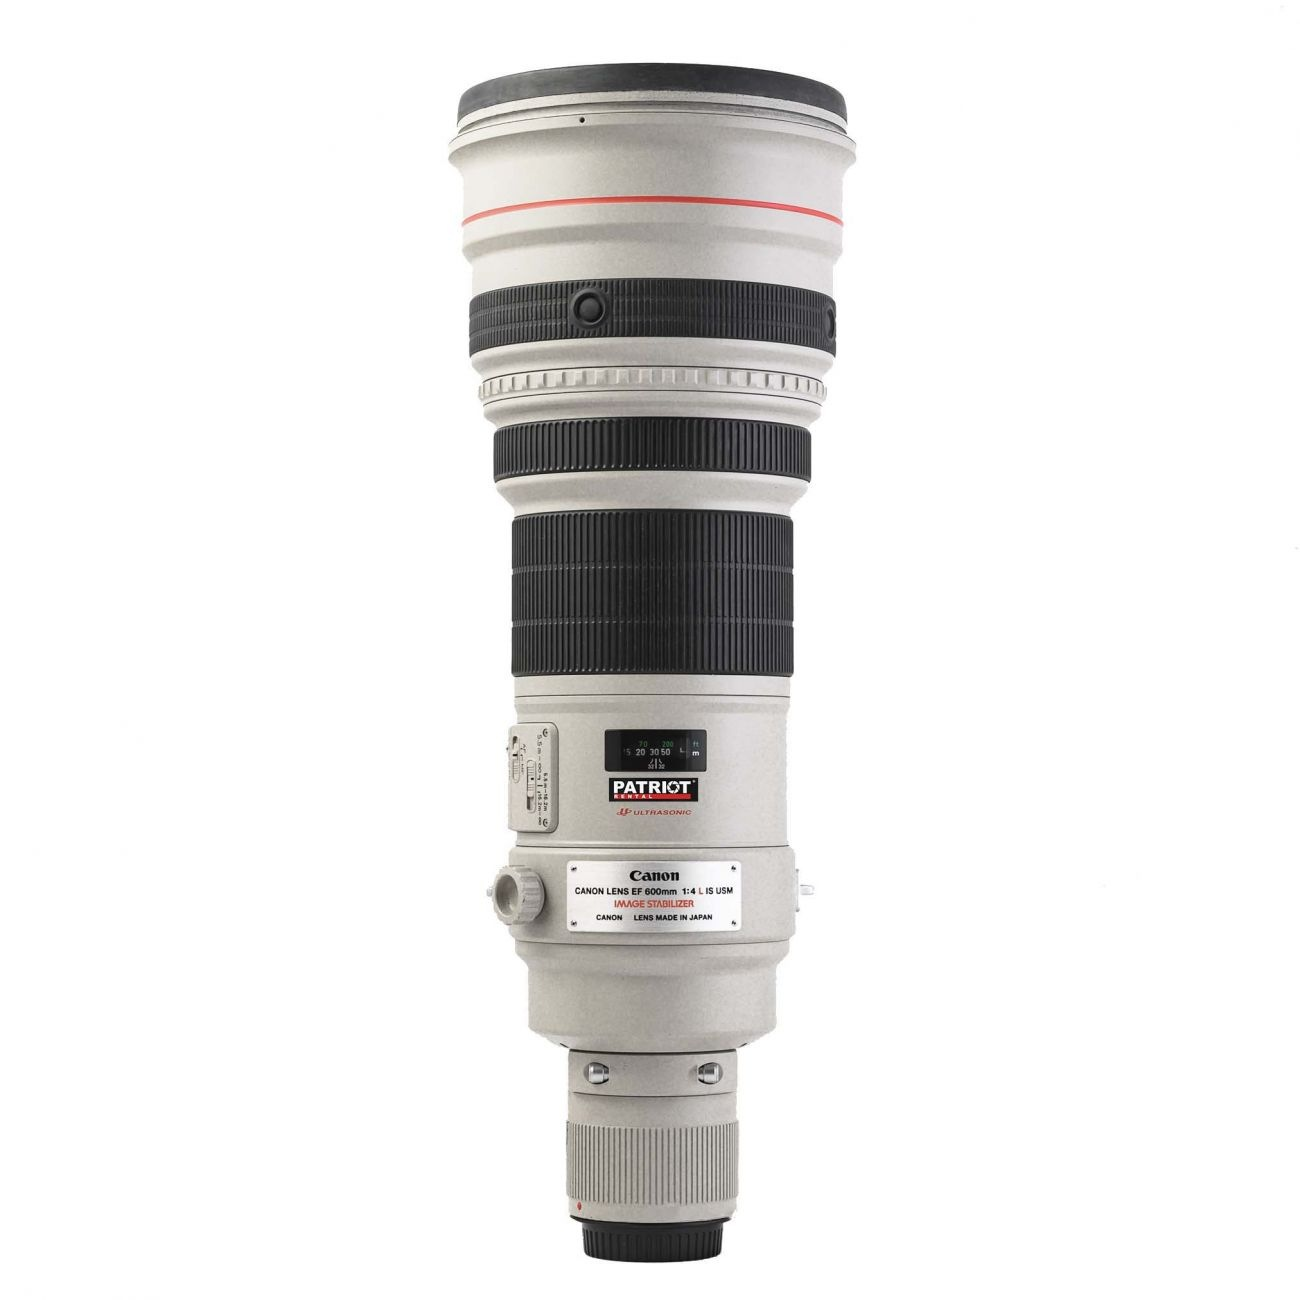 600mm Canon lens f/4 IS USM